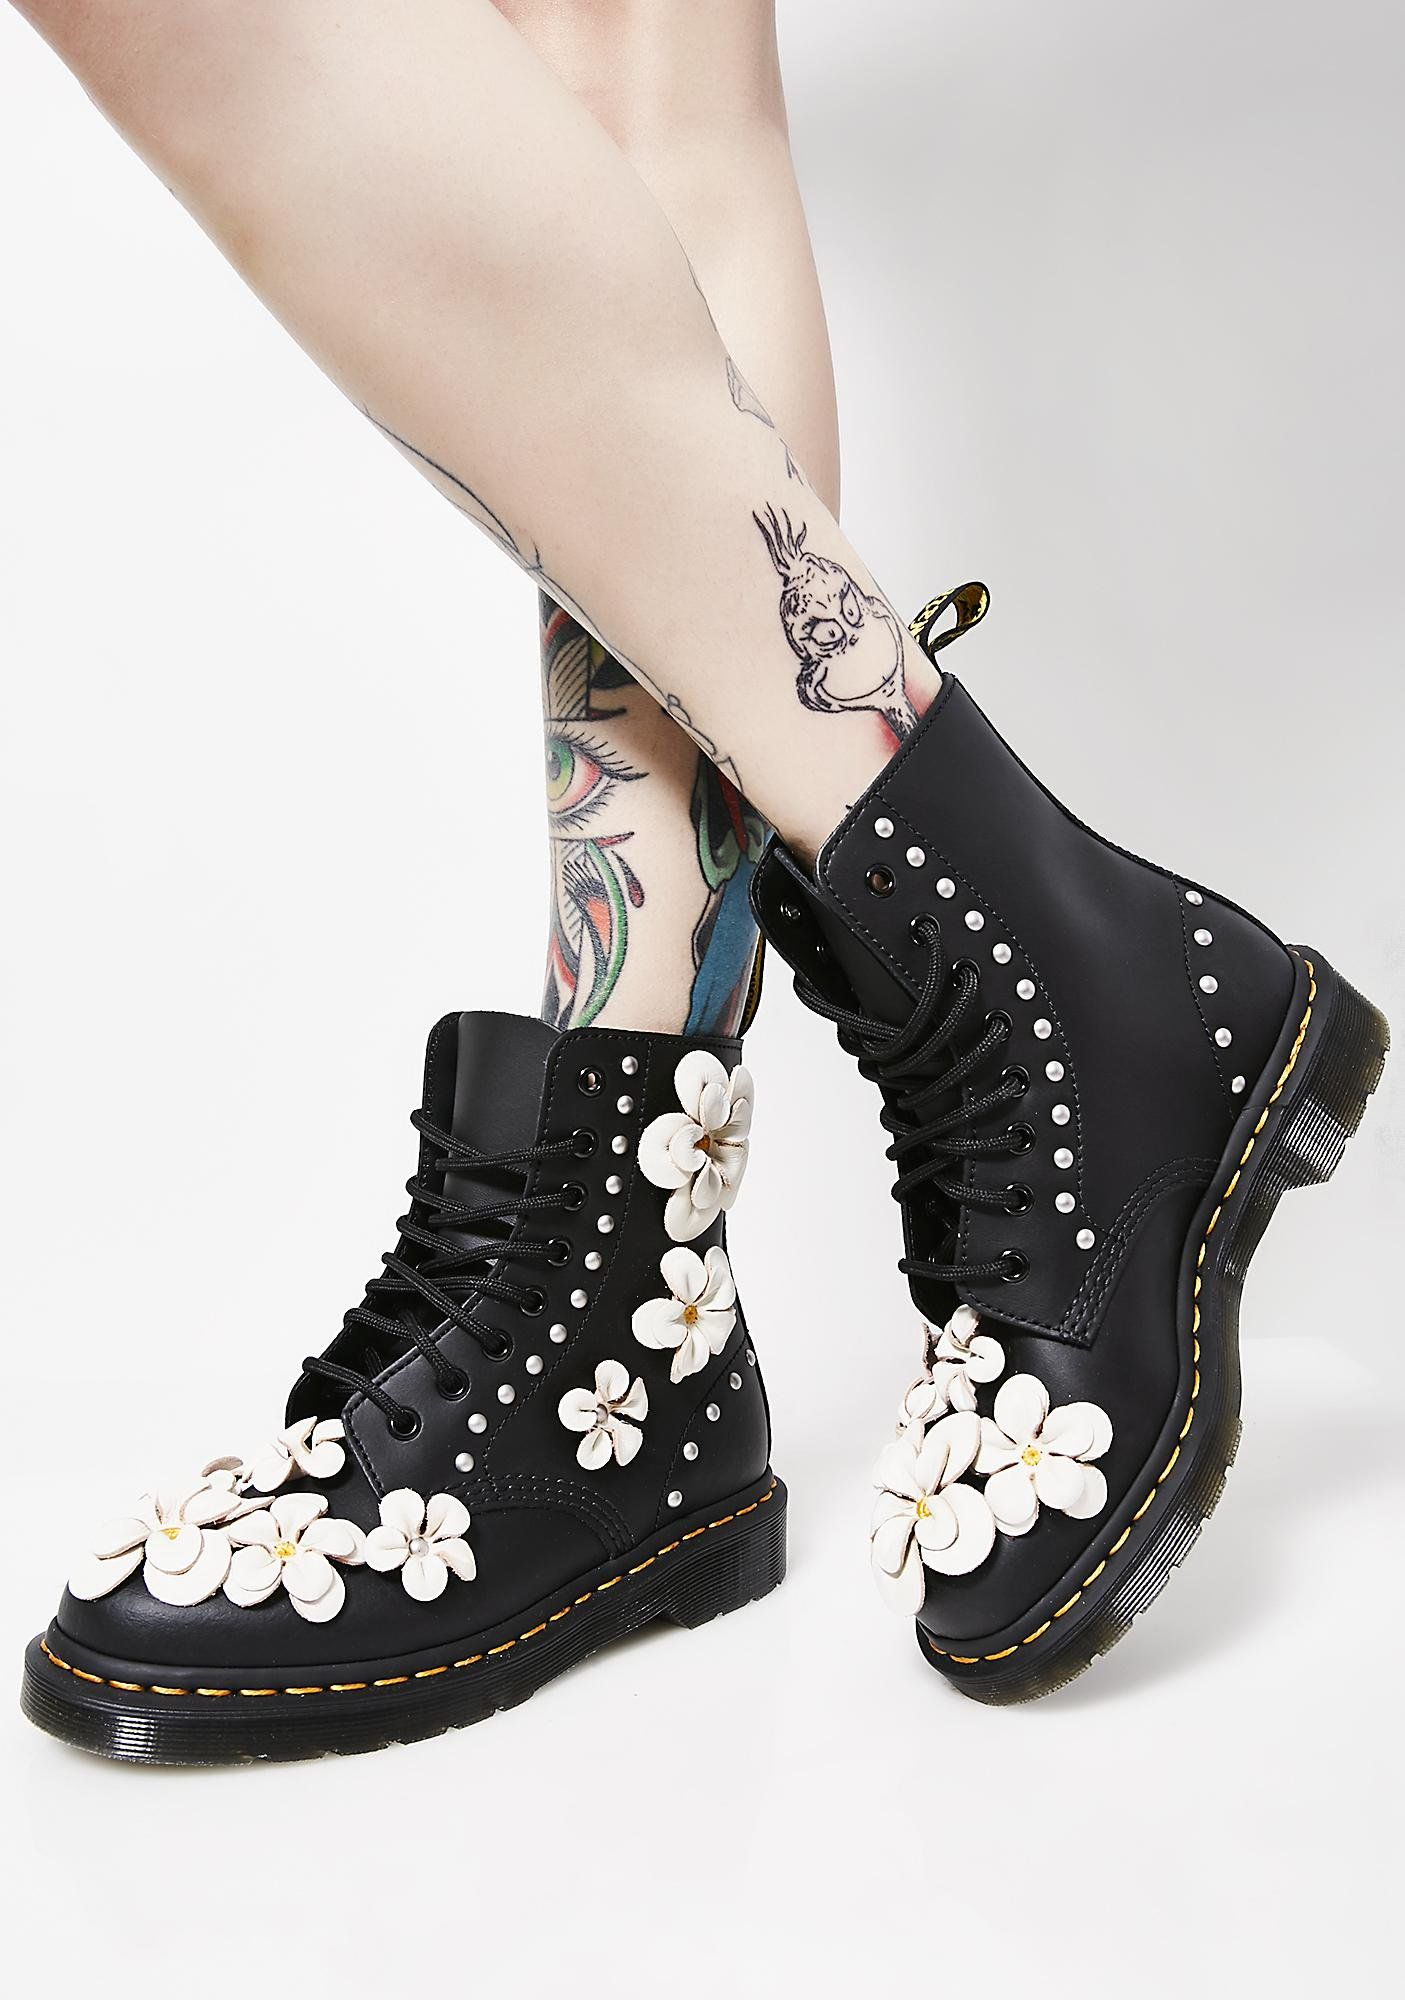 09239e2acccb Dr. Martens 1460 Pascal Flower Boots cuz you re fresher than a daisy. Feel  cool af with these leather combat boots that have a floral applique N   silver ...